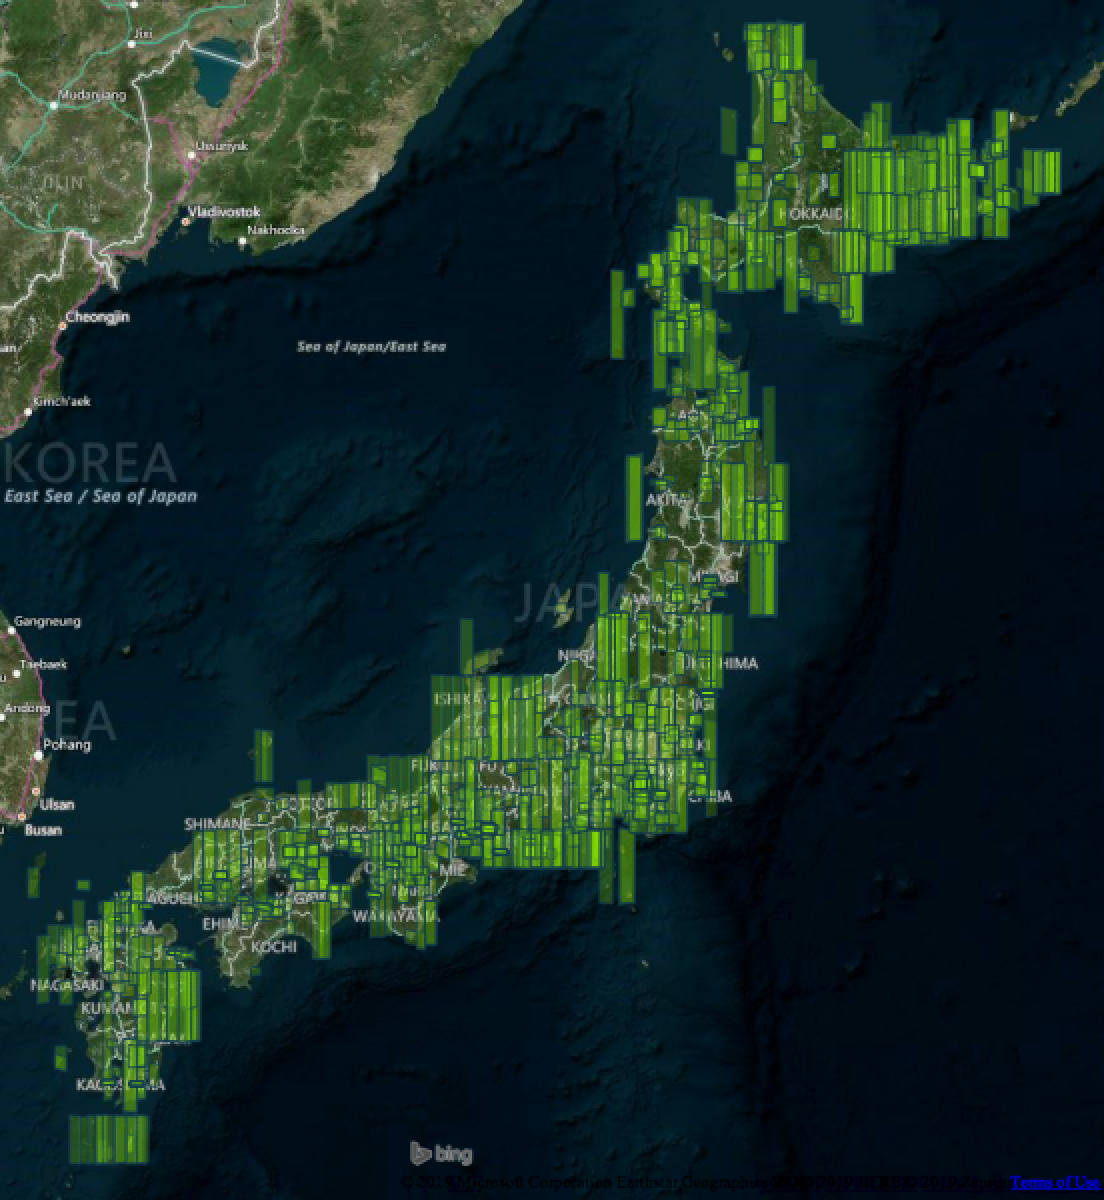 High resolution satellite imagery coverage of Japan